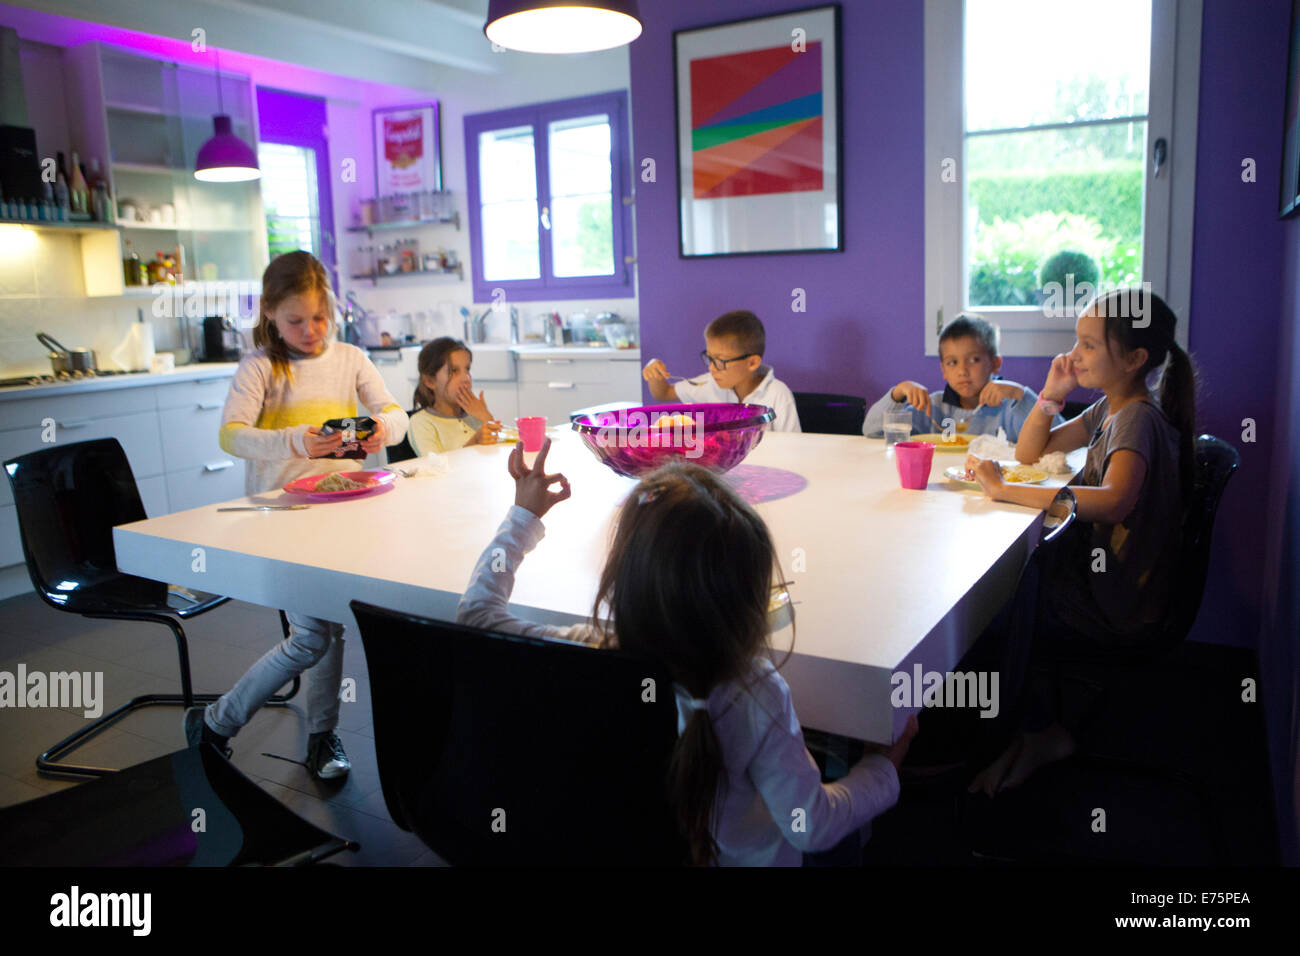 Large family - Stock Image